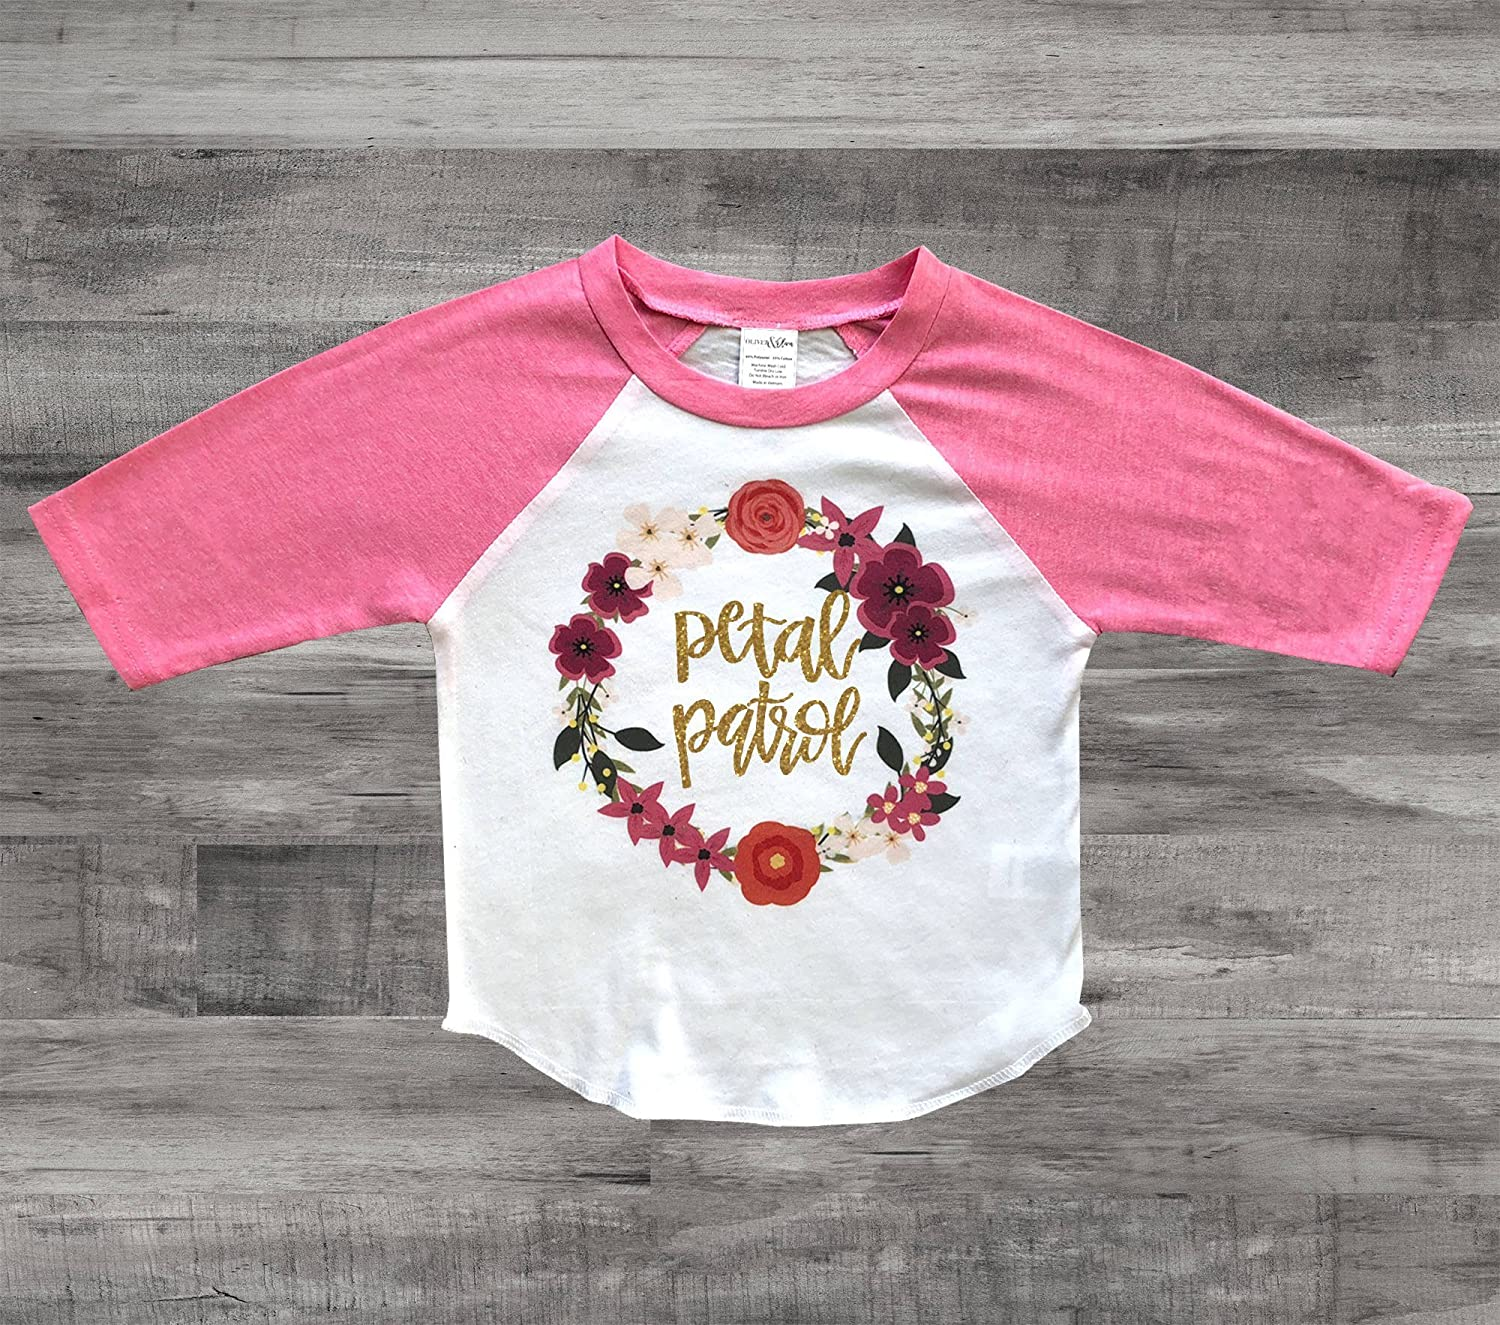 Petal Patrol Shirt, Flower Girl Shirt, Flower Girl Gift, Personalized Flower Girl Gift, Flower Girl Top, Flower Girl Present, Flower Girl